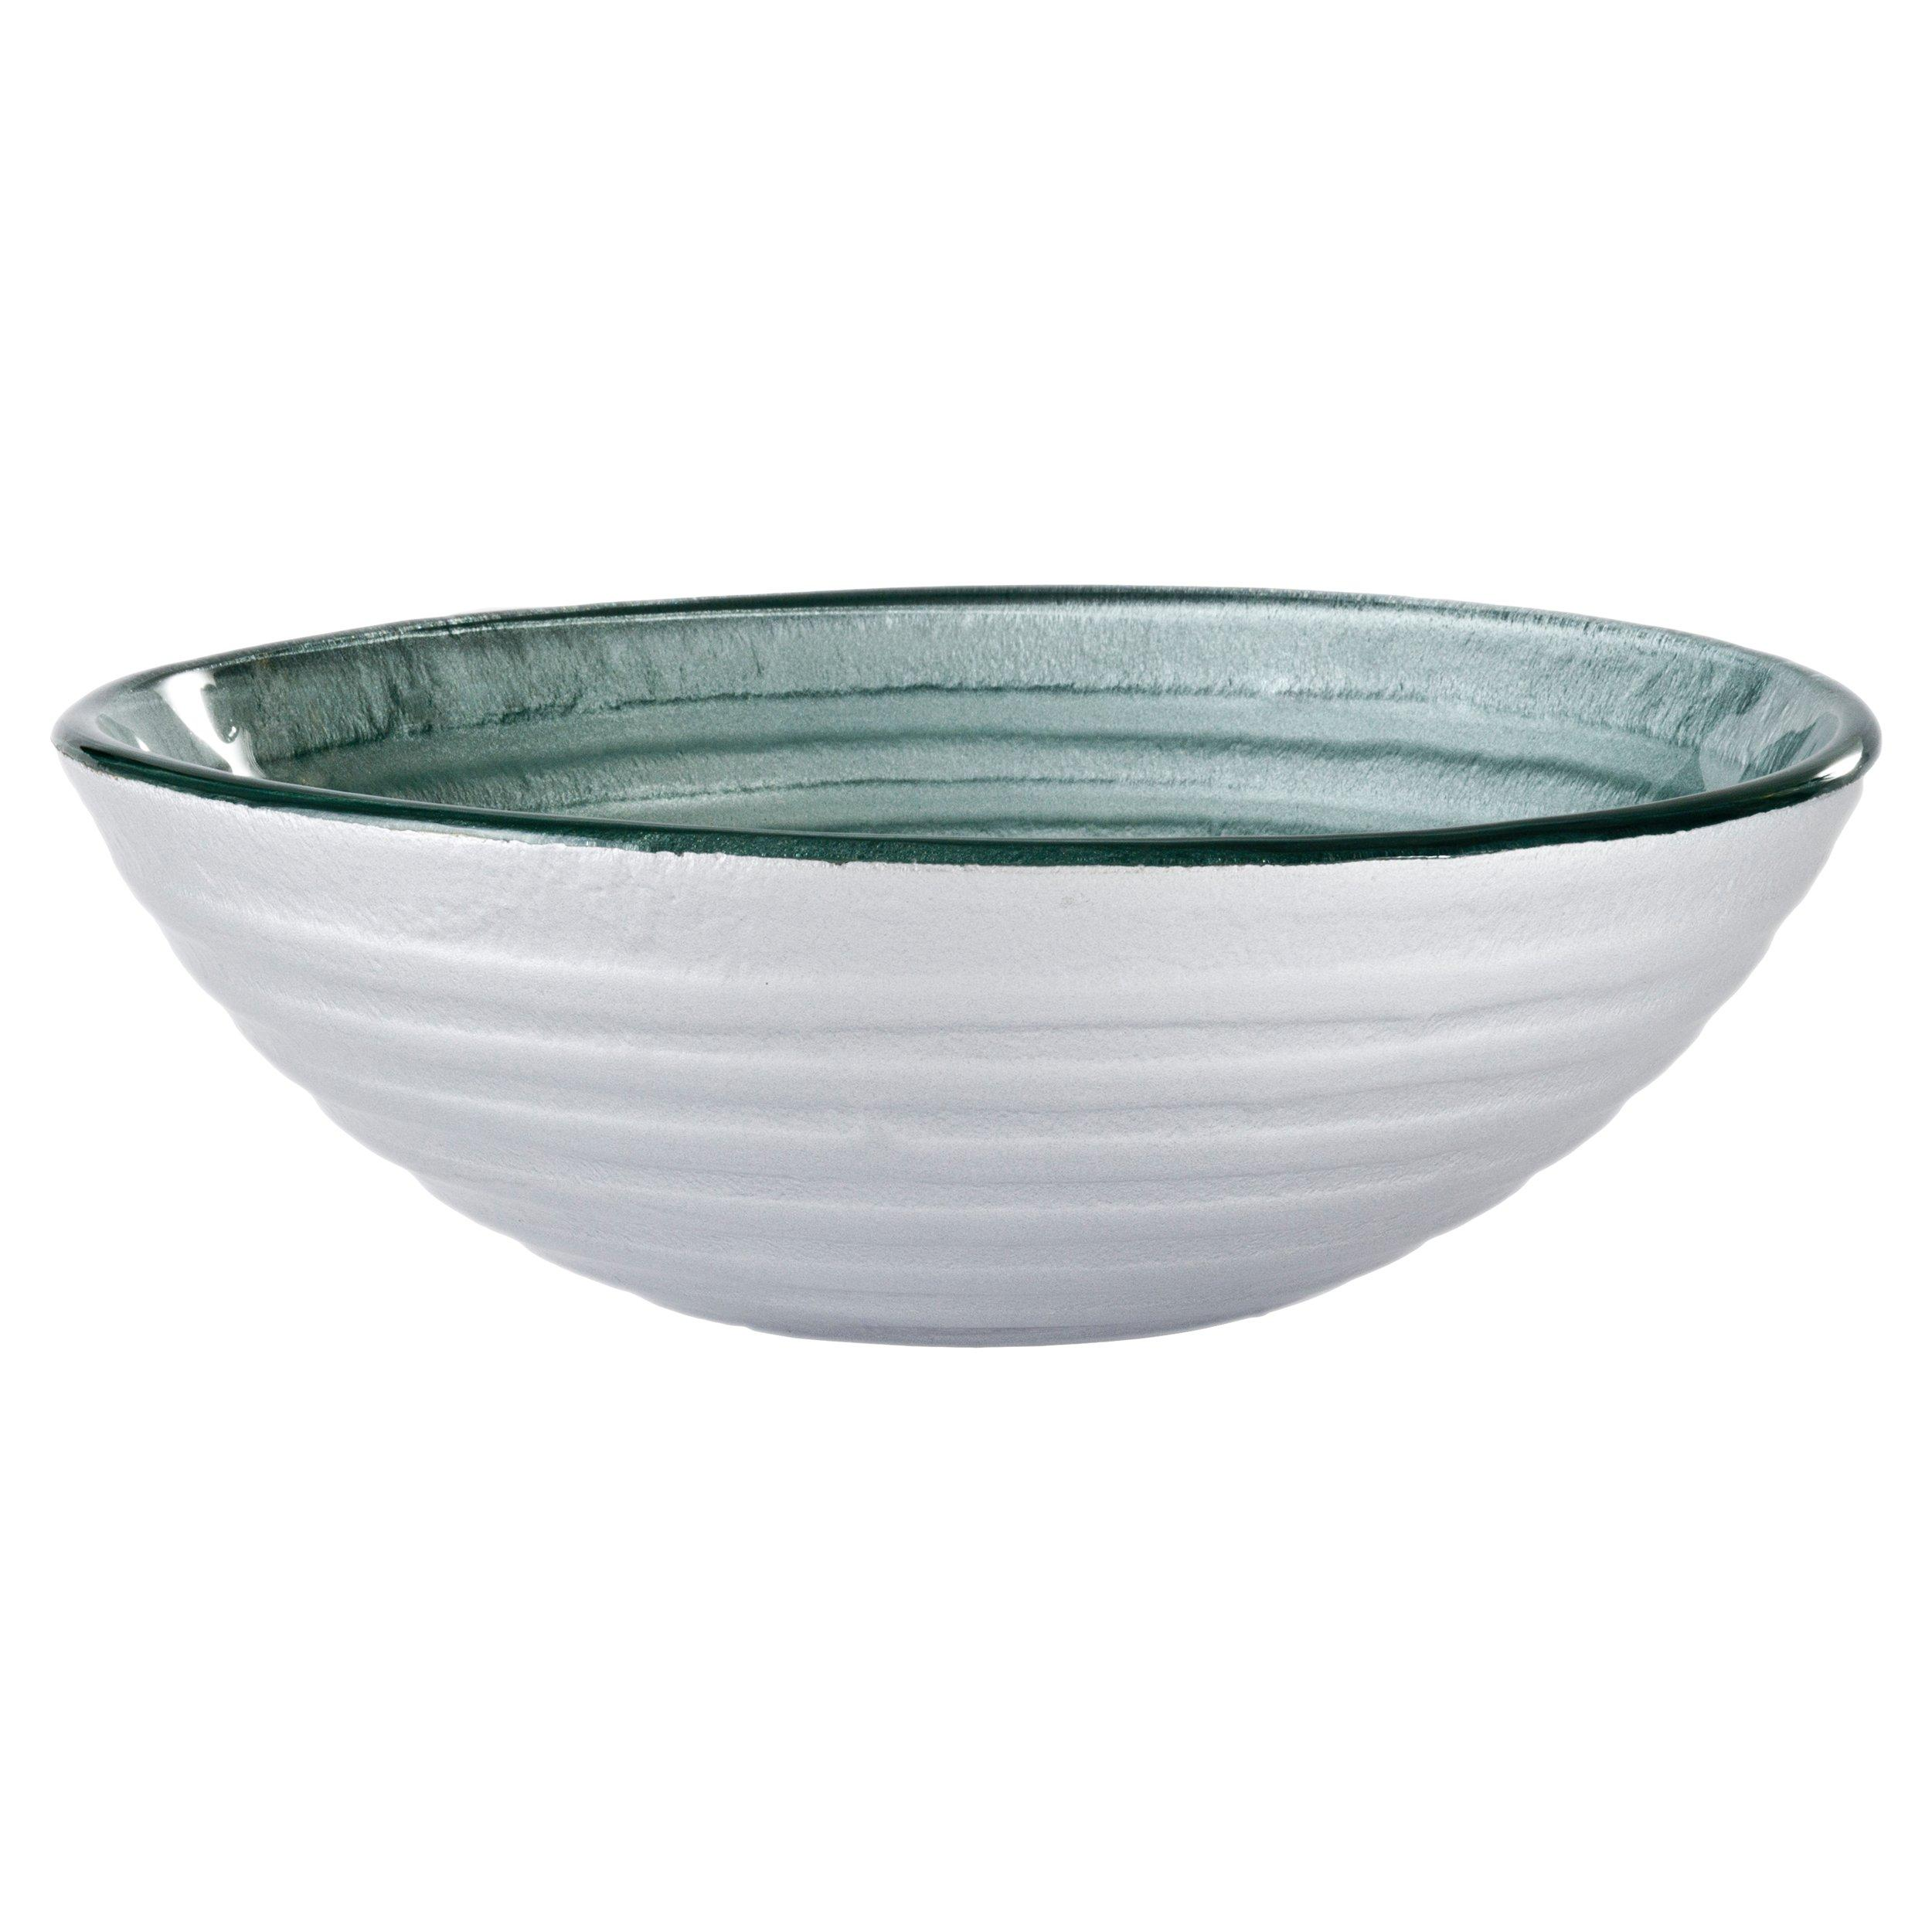 Round Glass Decorative Vessel Sink   16 1/2in. X 16 1/2in.   937400122    Floor And Decor